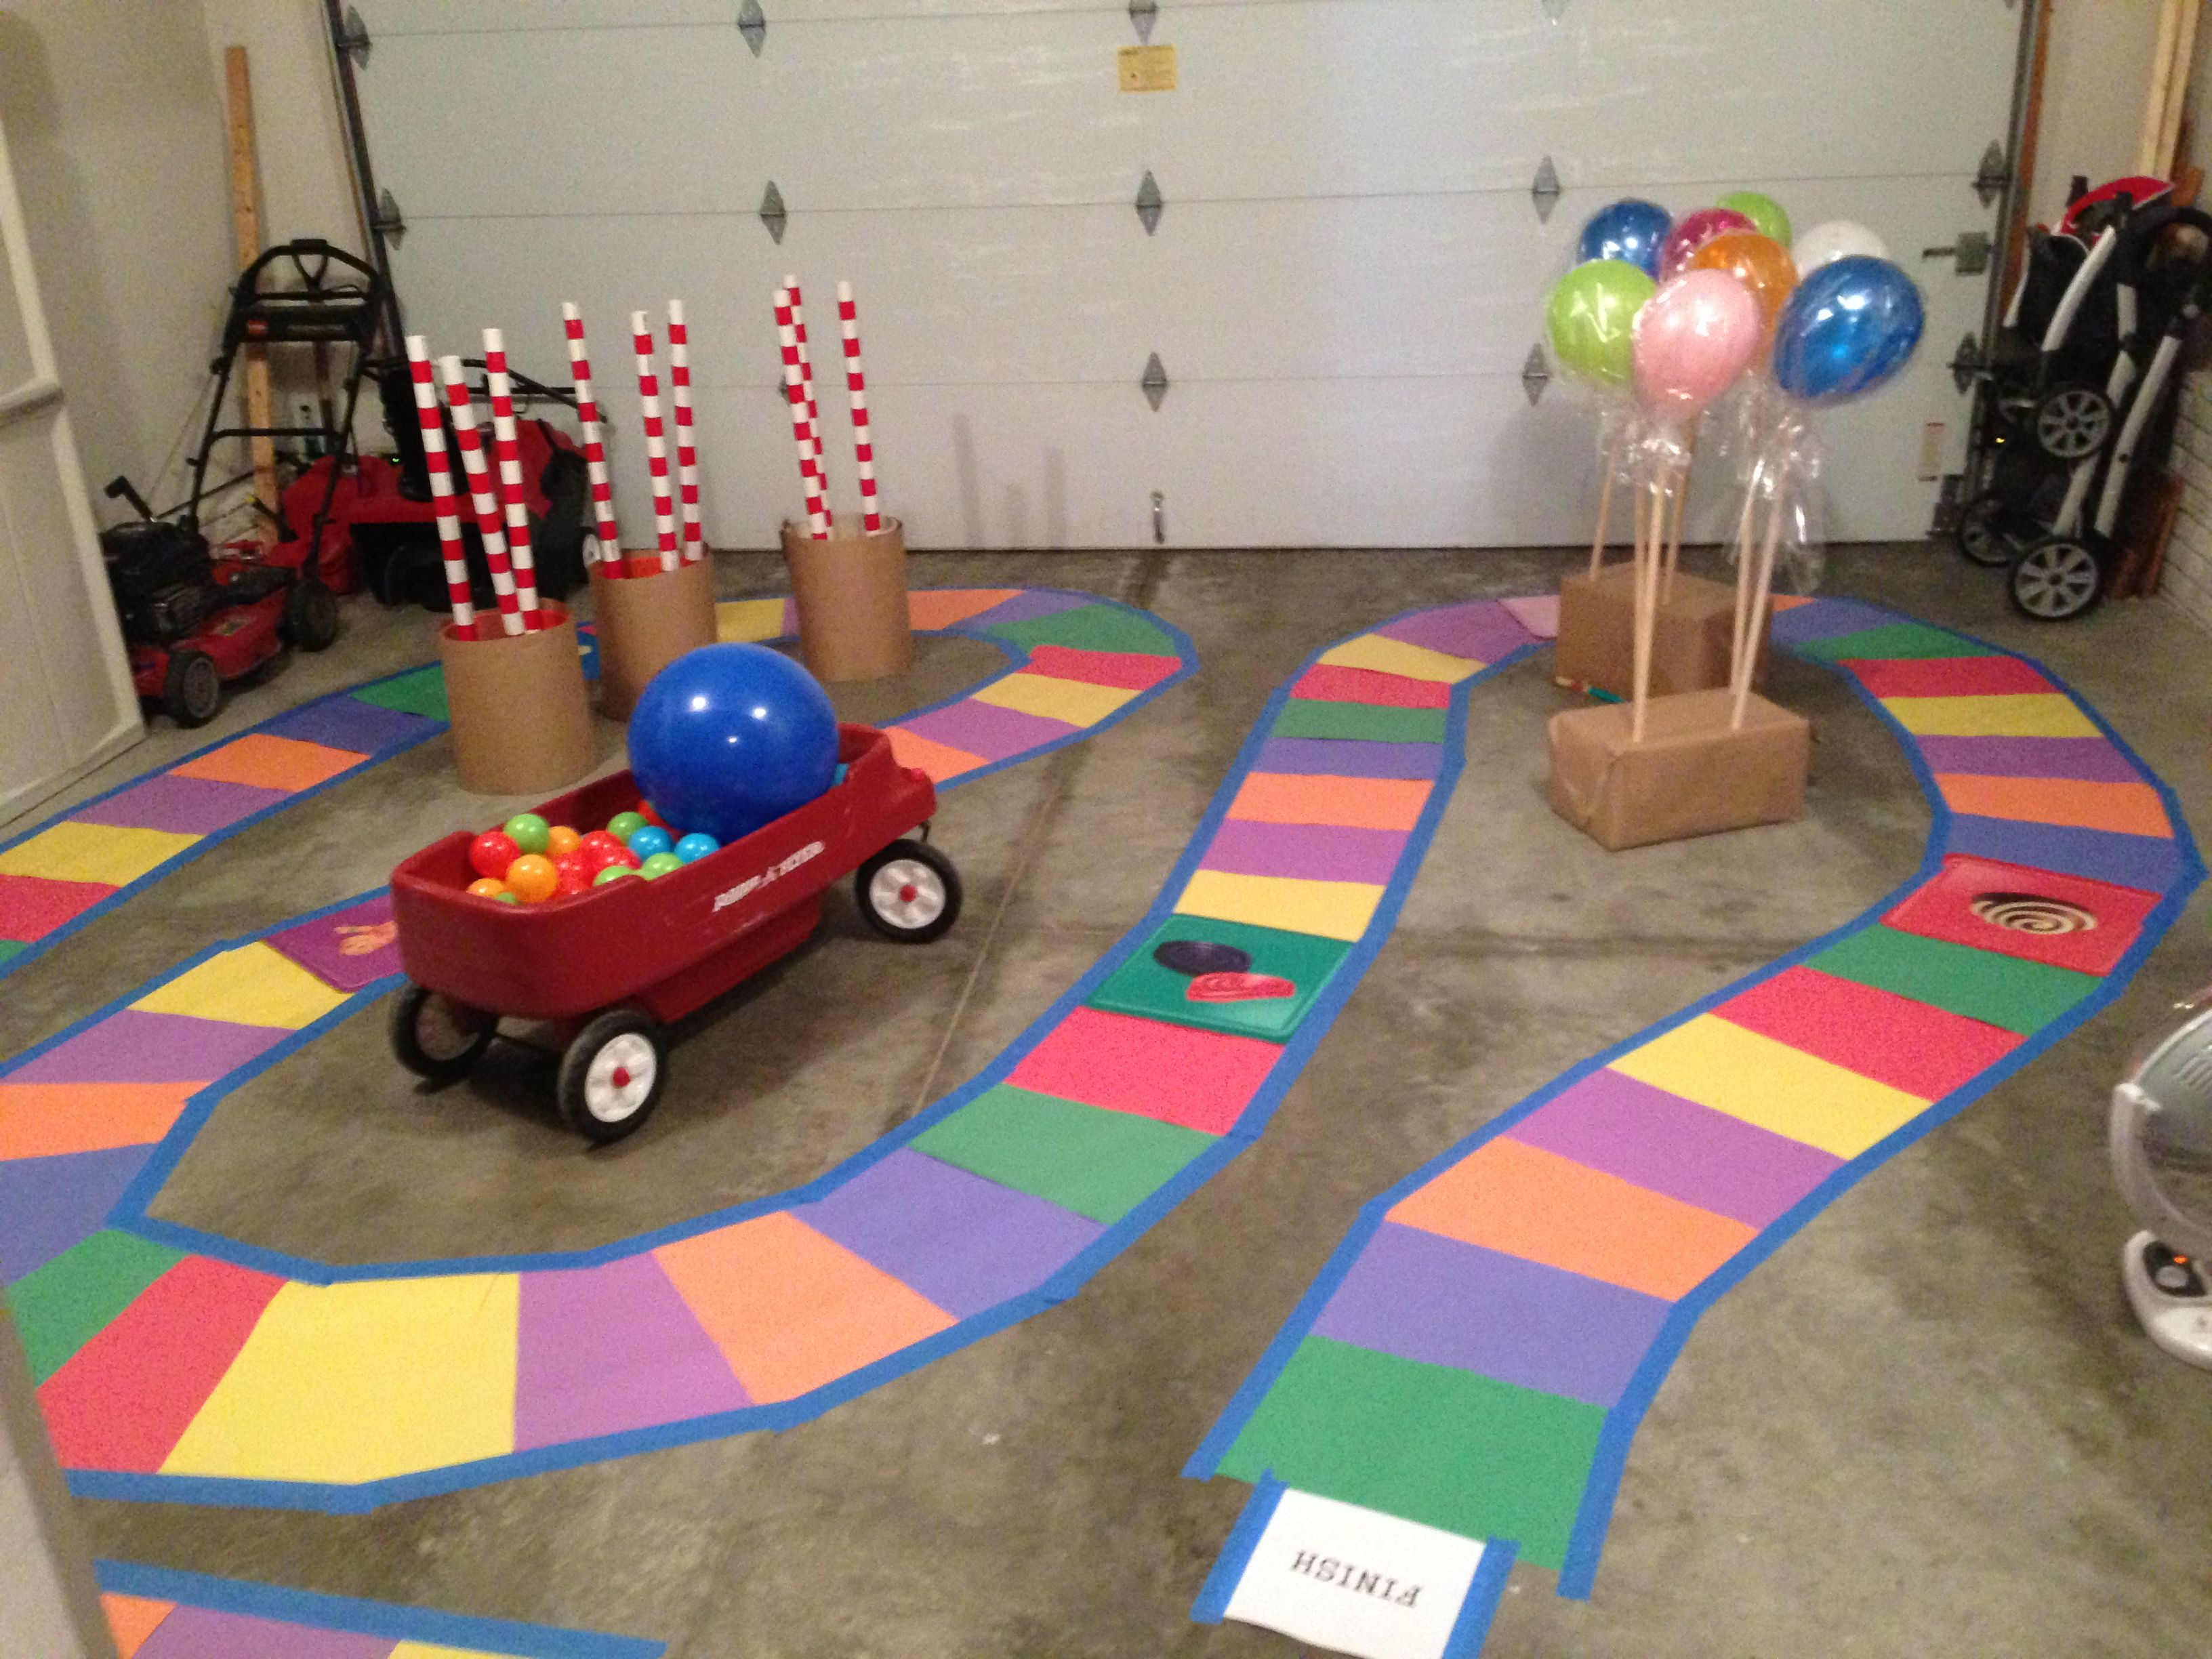 Giant Candyland Board Fun Activity For The Kids